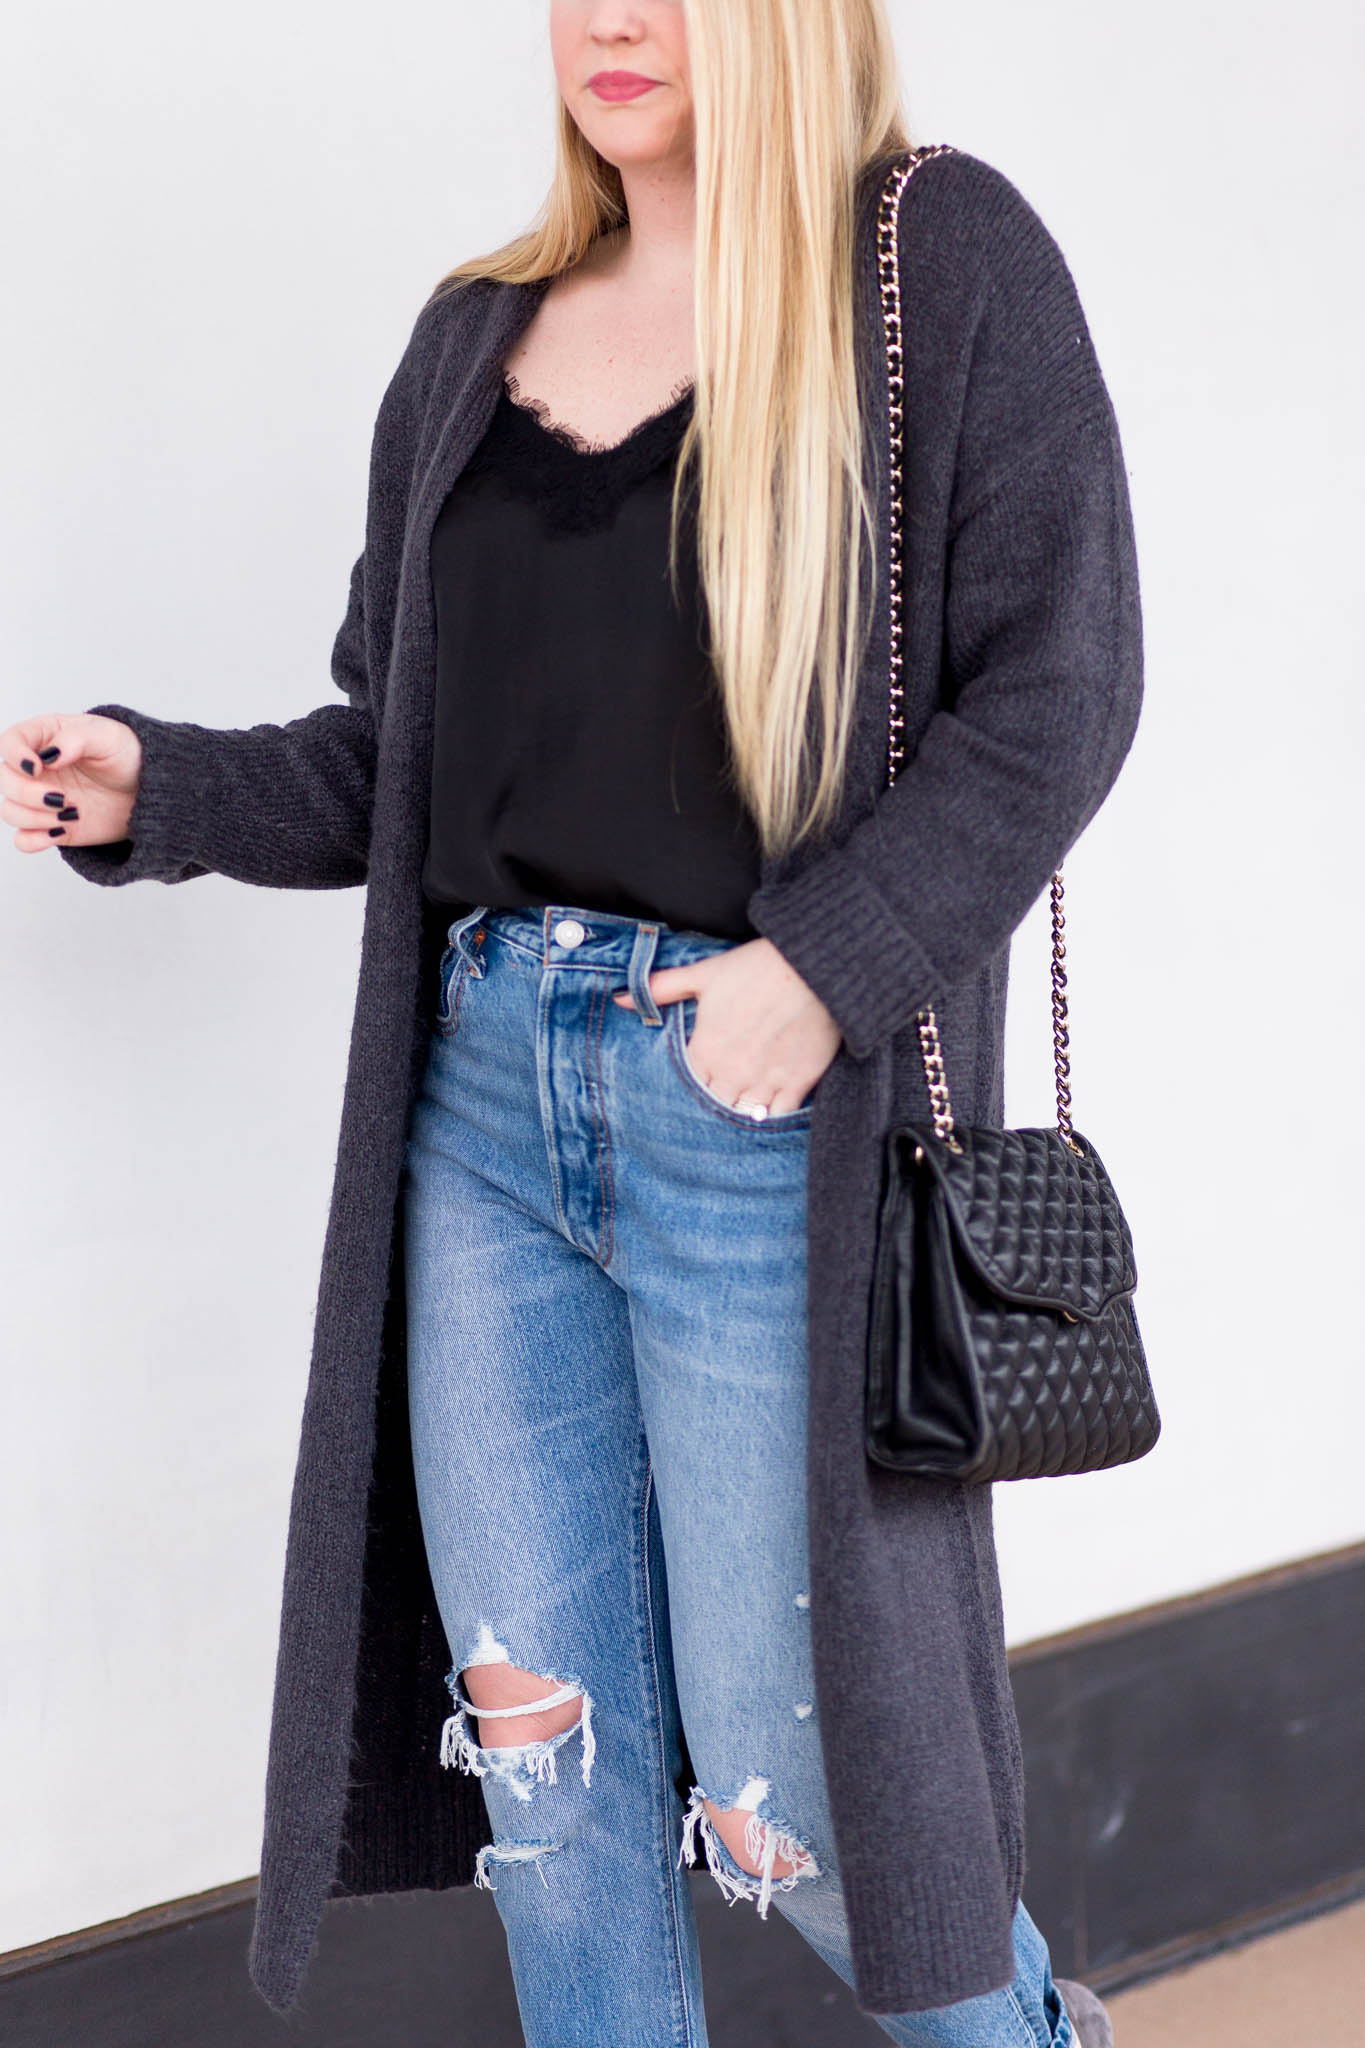 How to wear a longline cardigan